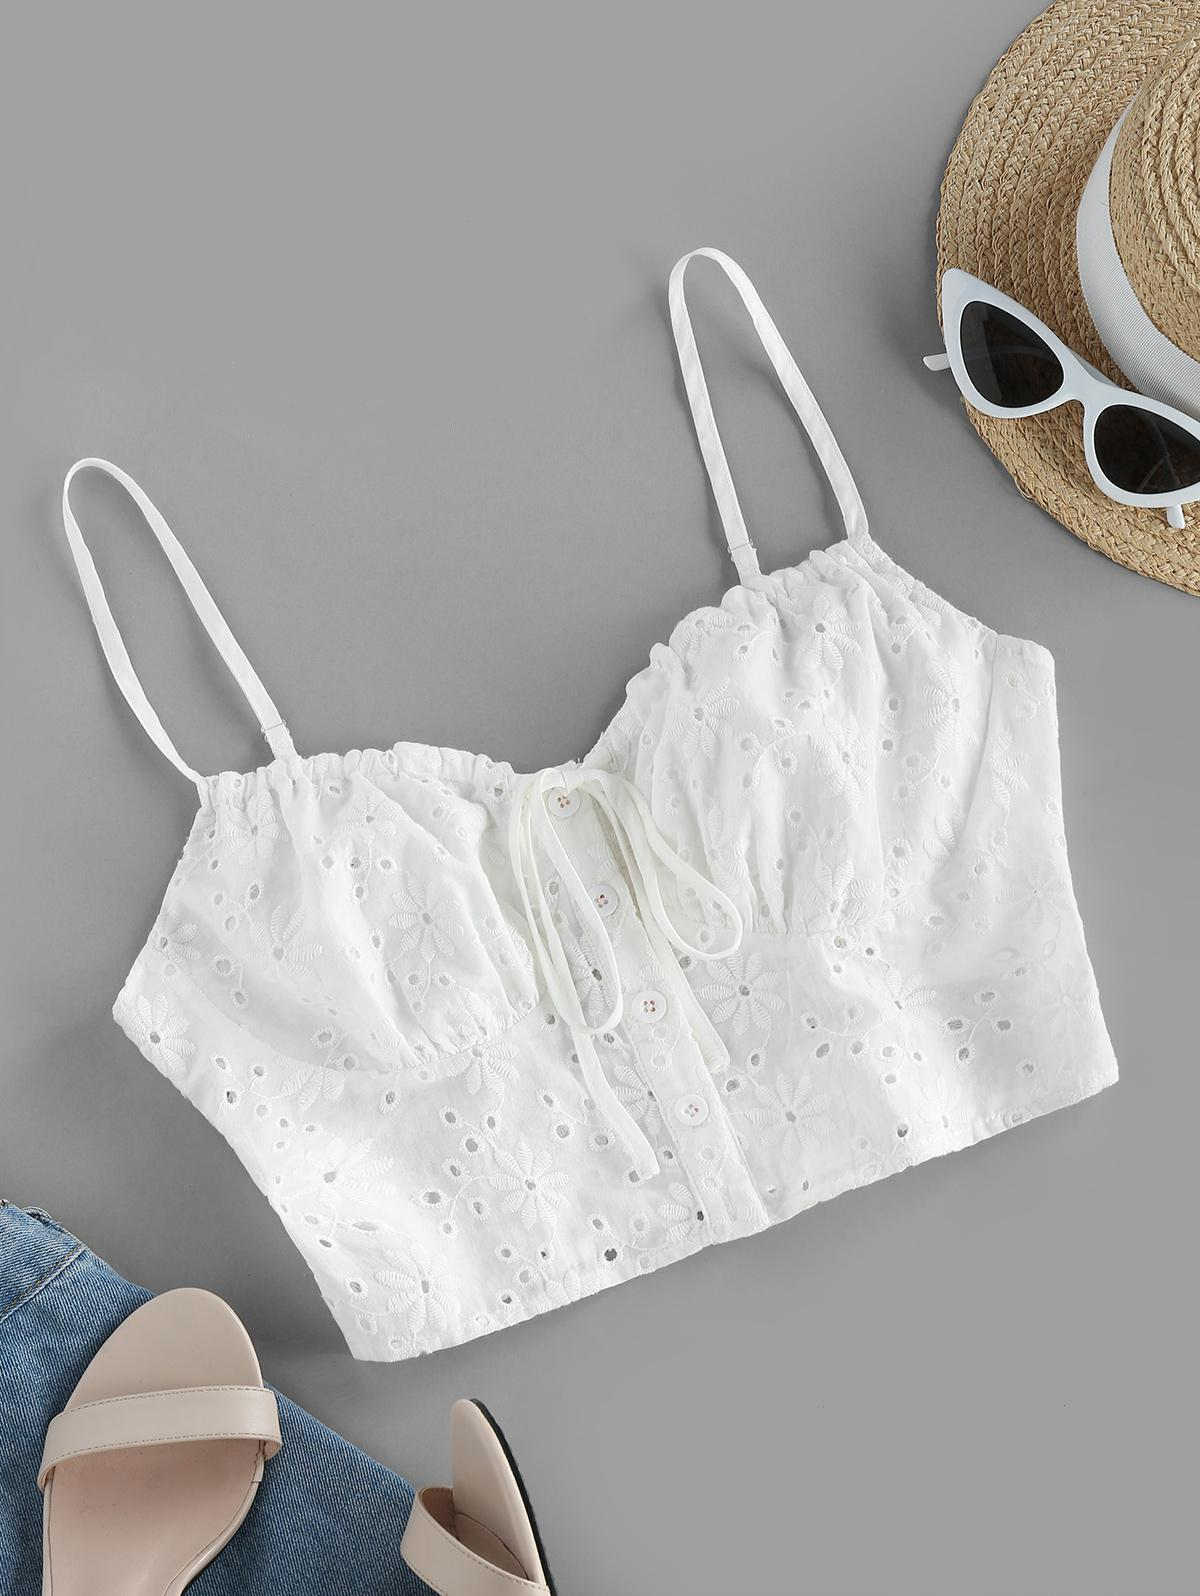 ZAFUL Broderie Anglaise Eyelet Tie Cami Top